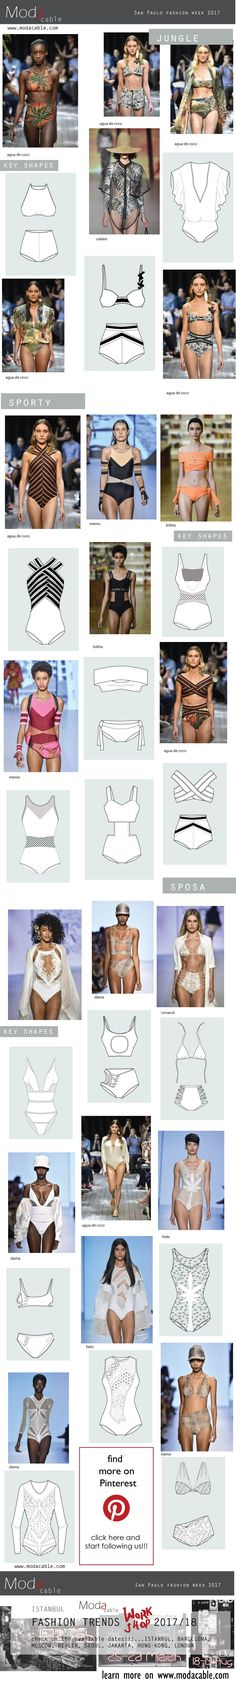 All the swimwear trends SS 2017/18 are already on modacable.com....go Premium to unlock all of them!!!   women's swimwear bikini